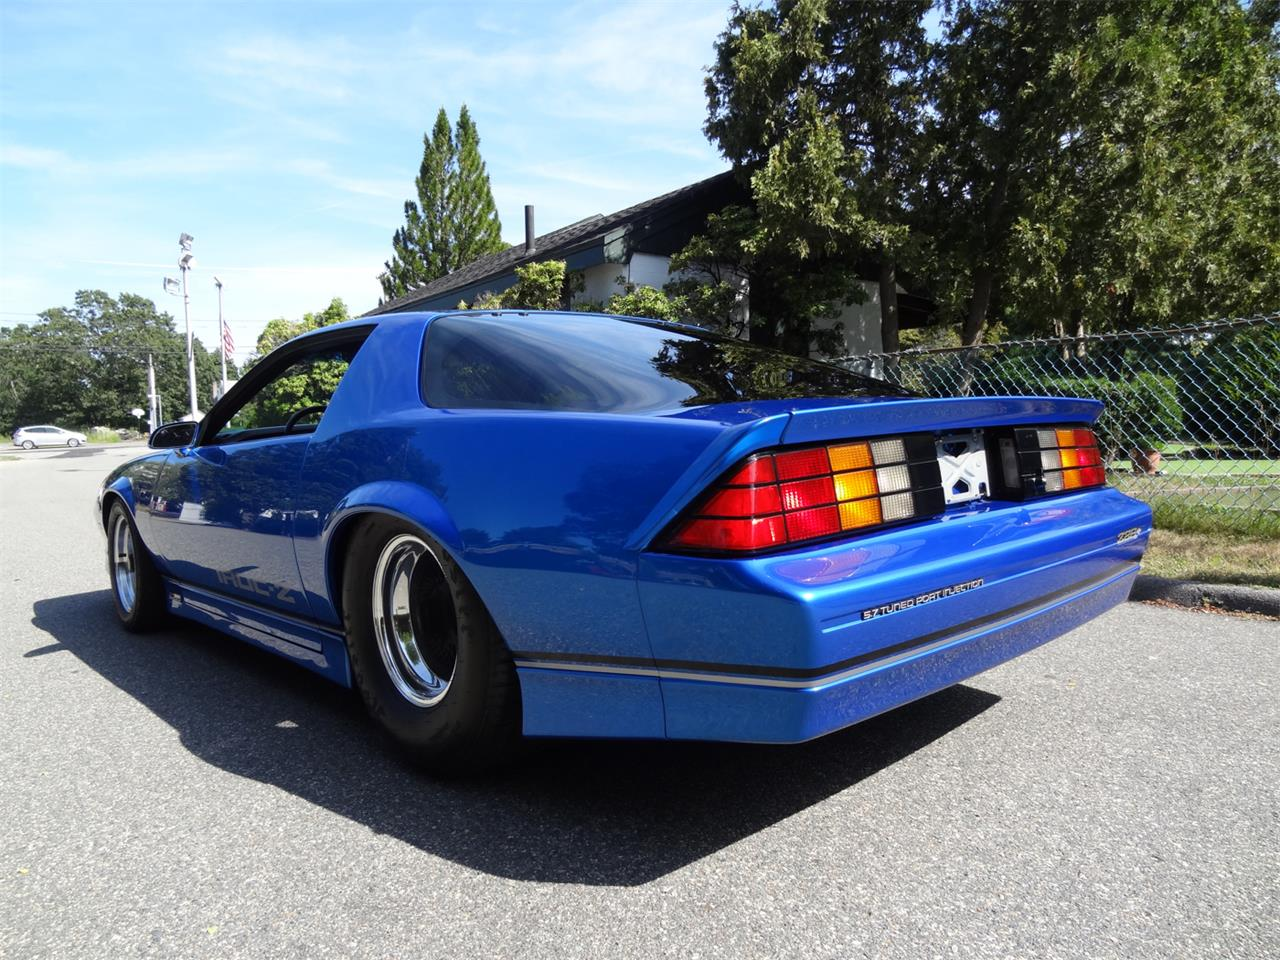 Large Picture of 1983 Chevrolet Camaro IROC Z28 Offered by a Private Seller - QUEA